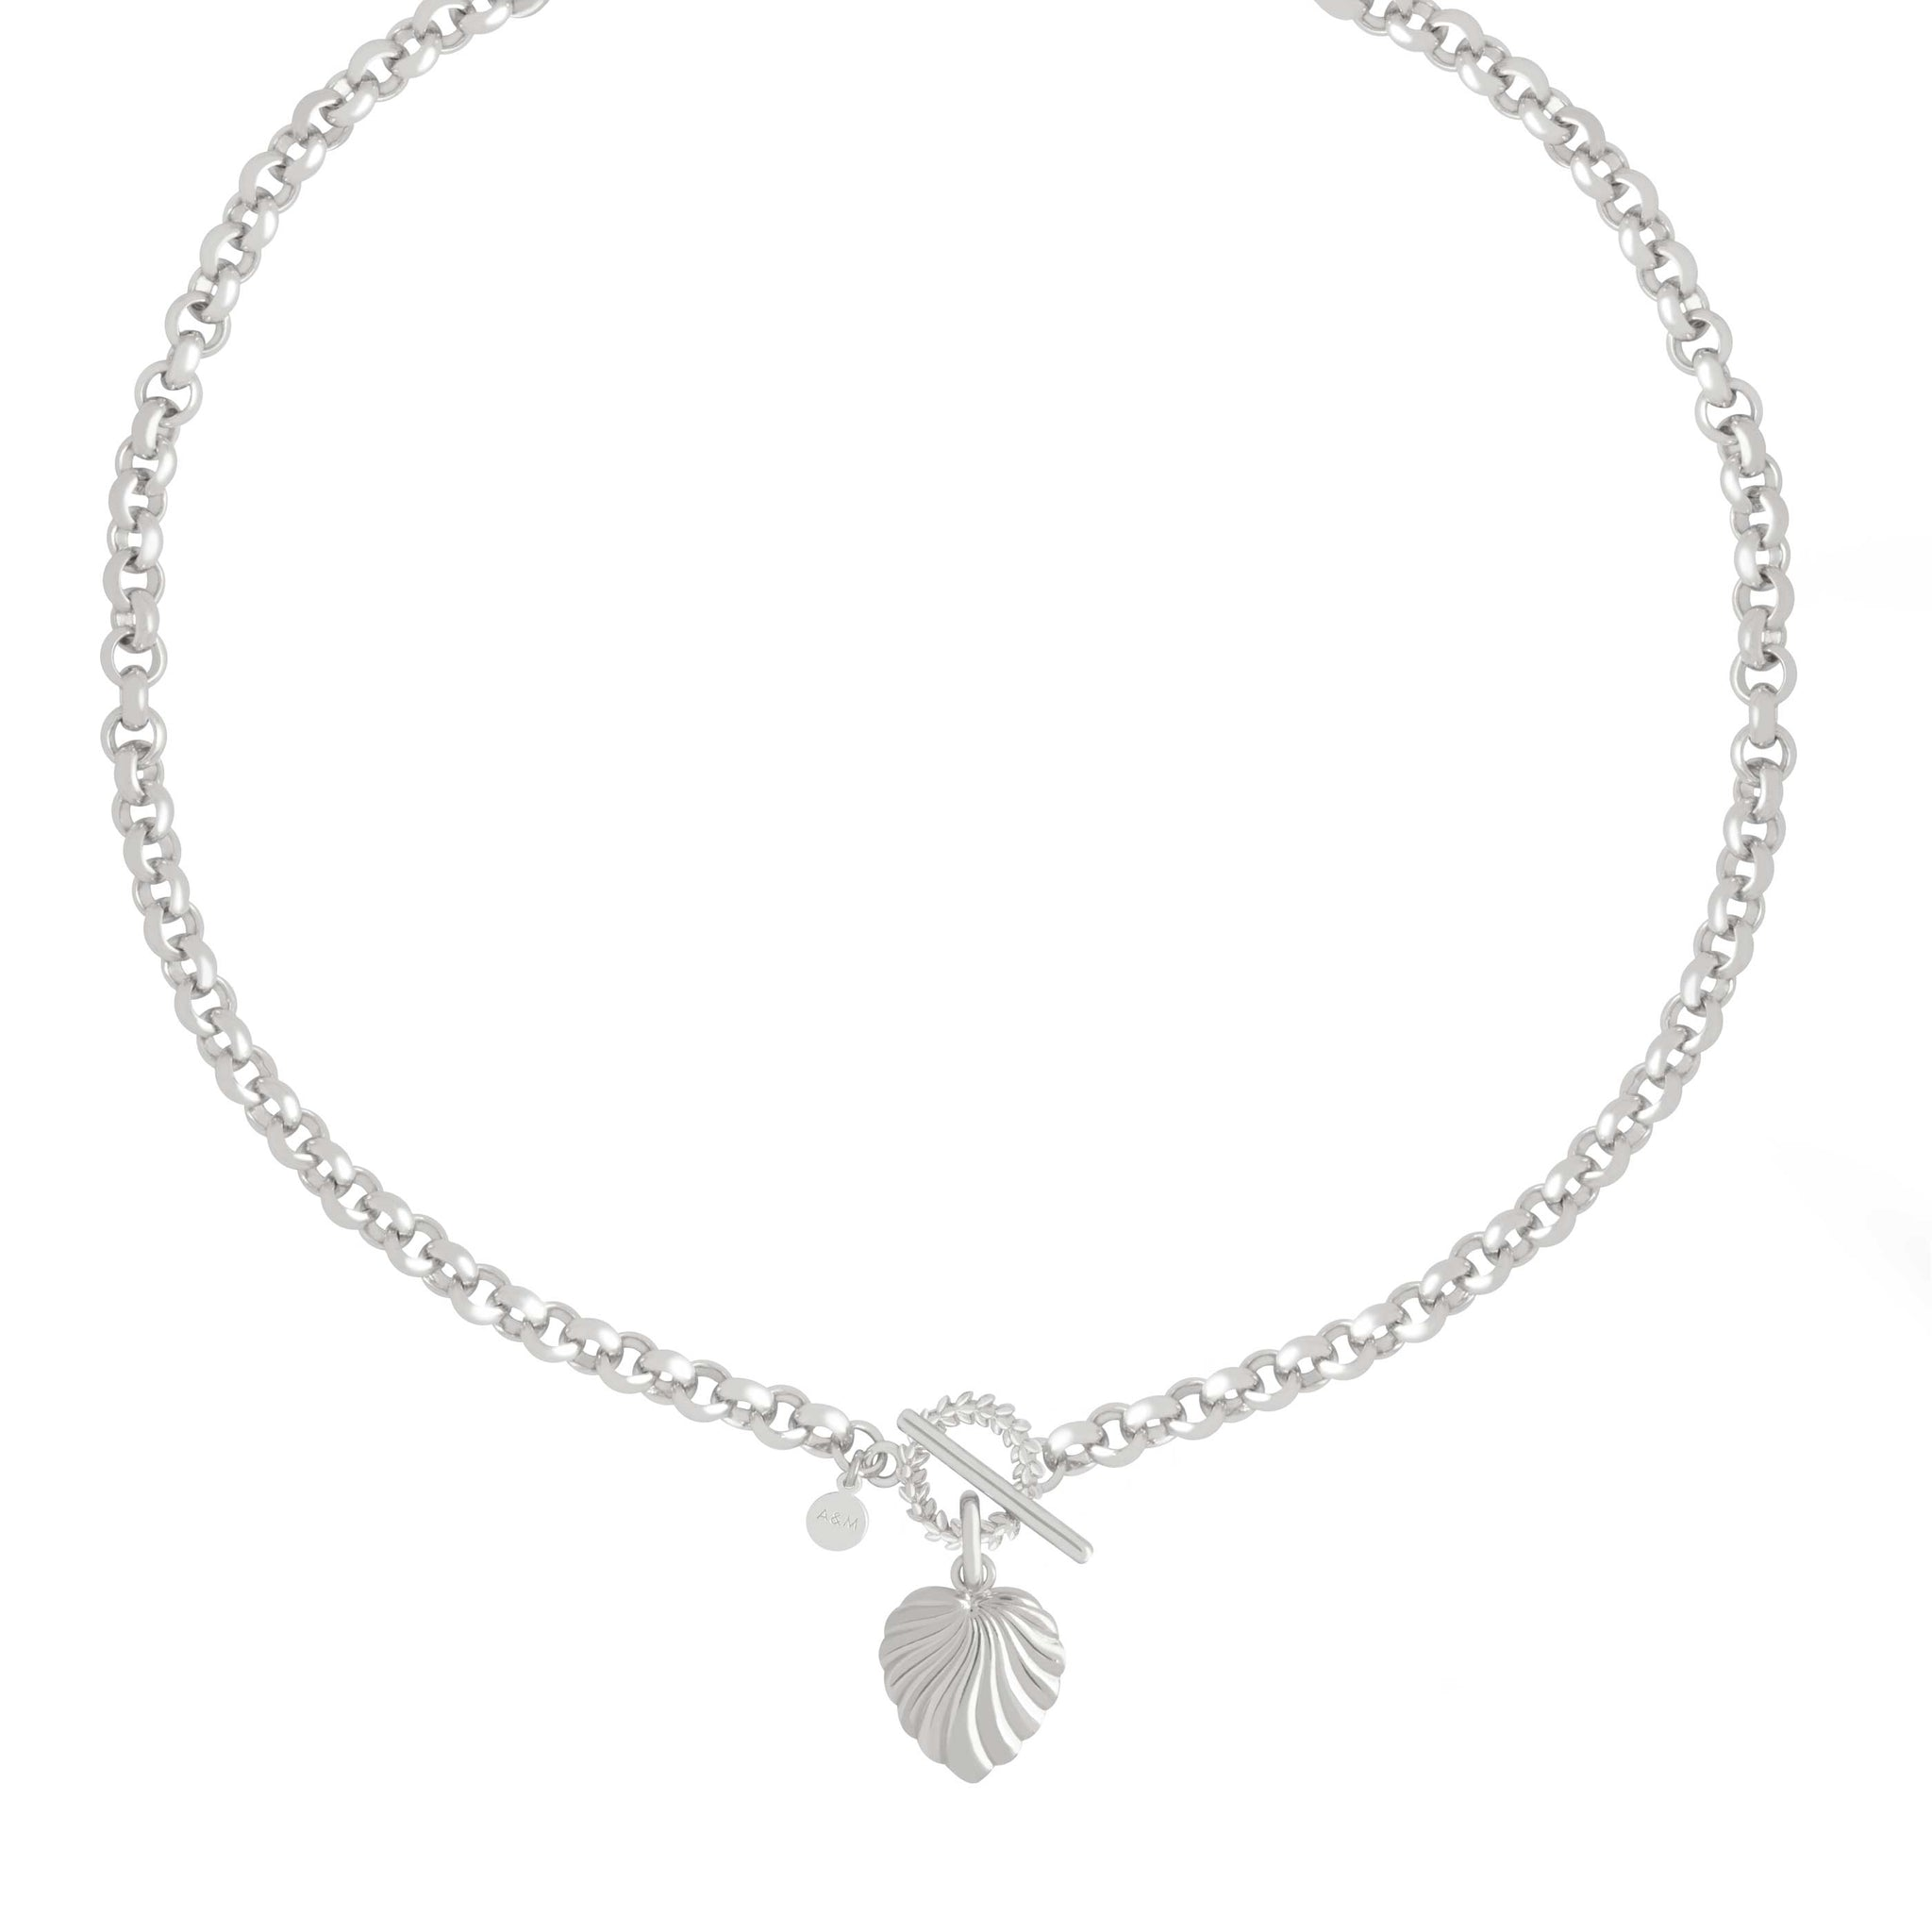 Wreath T-Bar Chunky Necklace in Silver